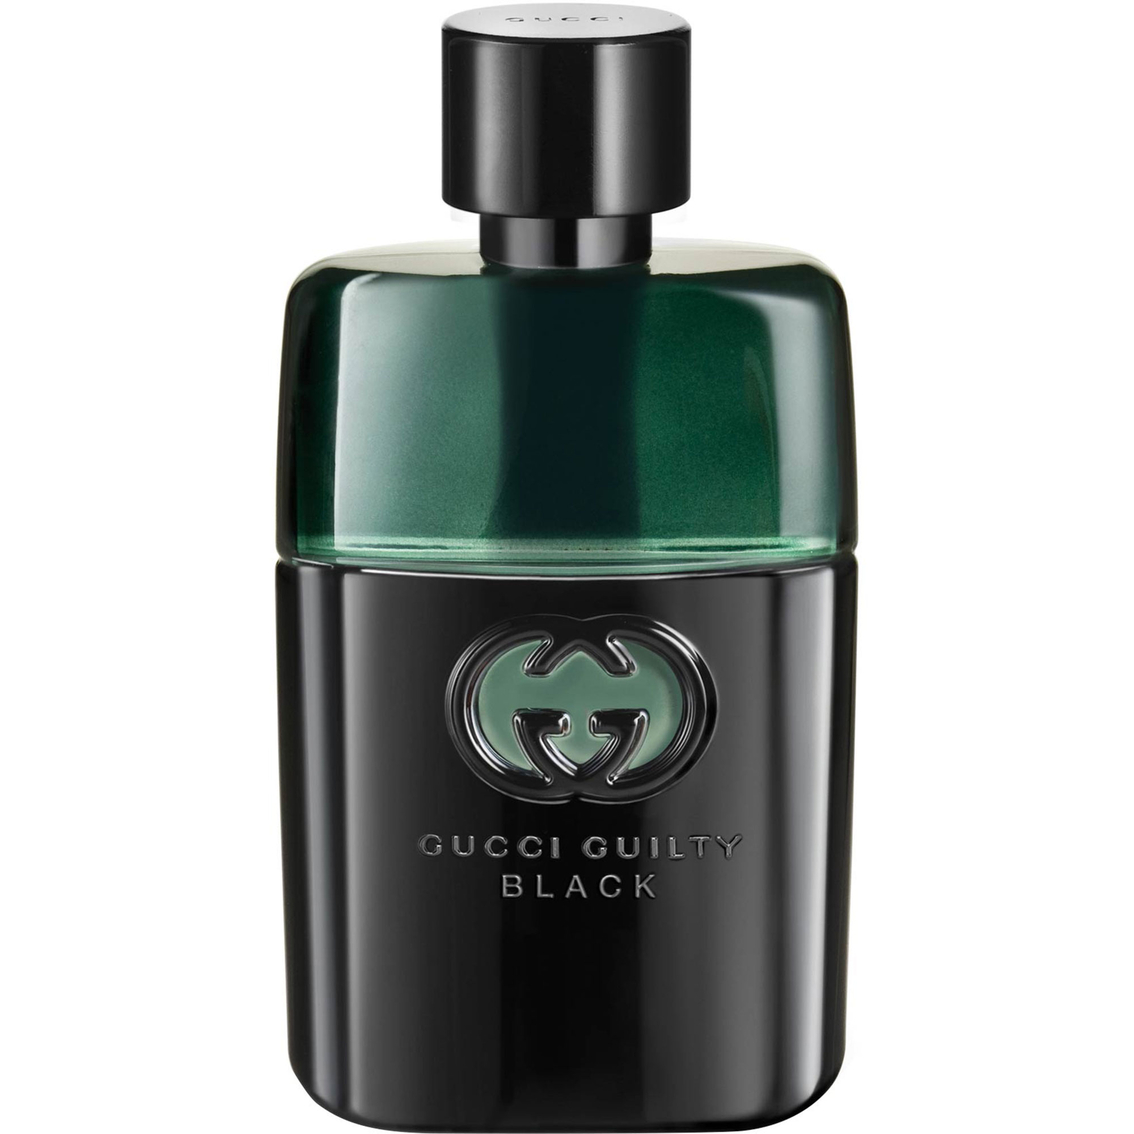 f2a4cdb00 Gucci Guilty Black Eau De Toilette Spray | Men's Fragrances | Beauty ...